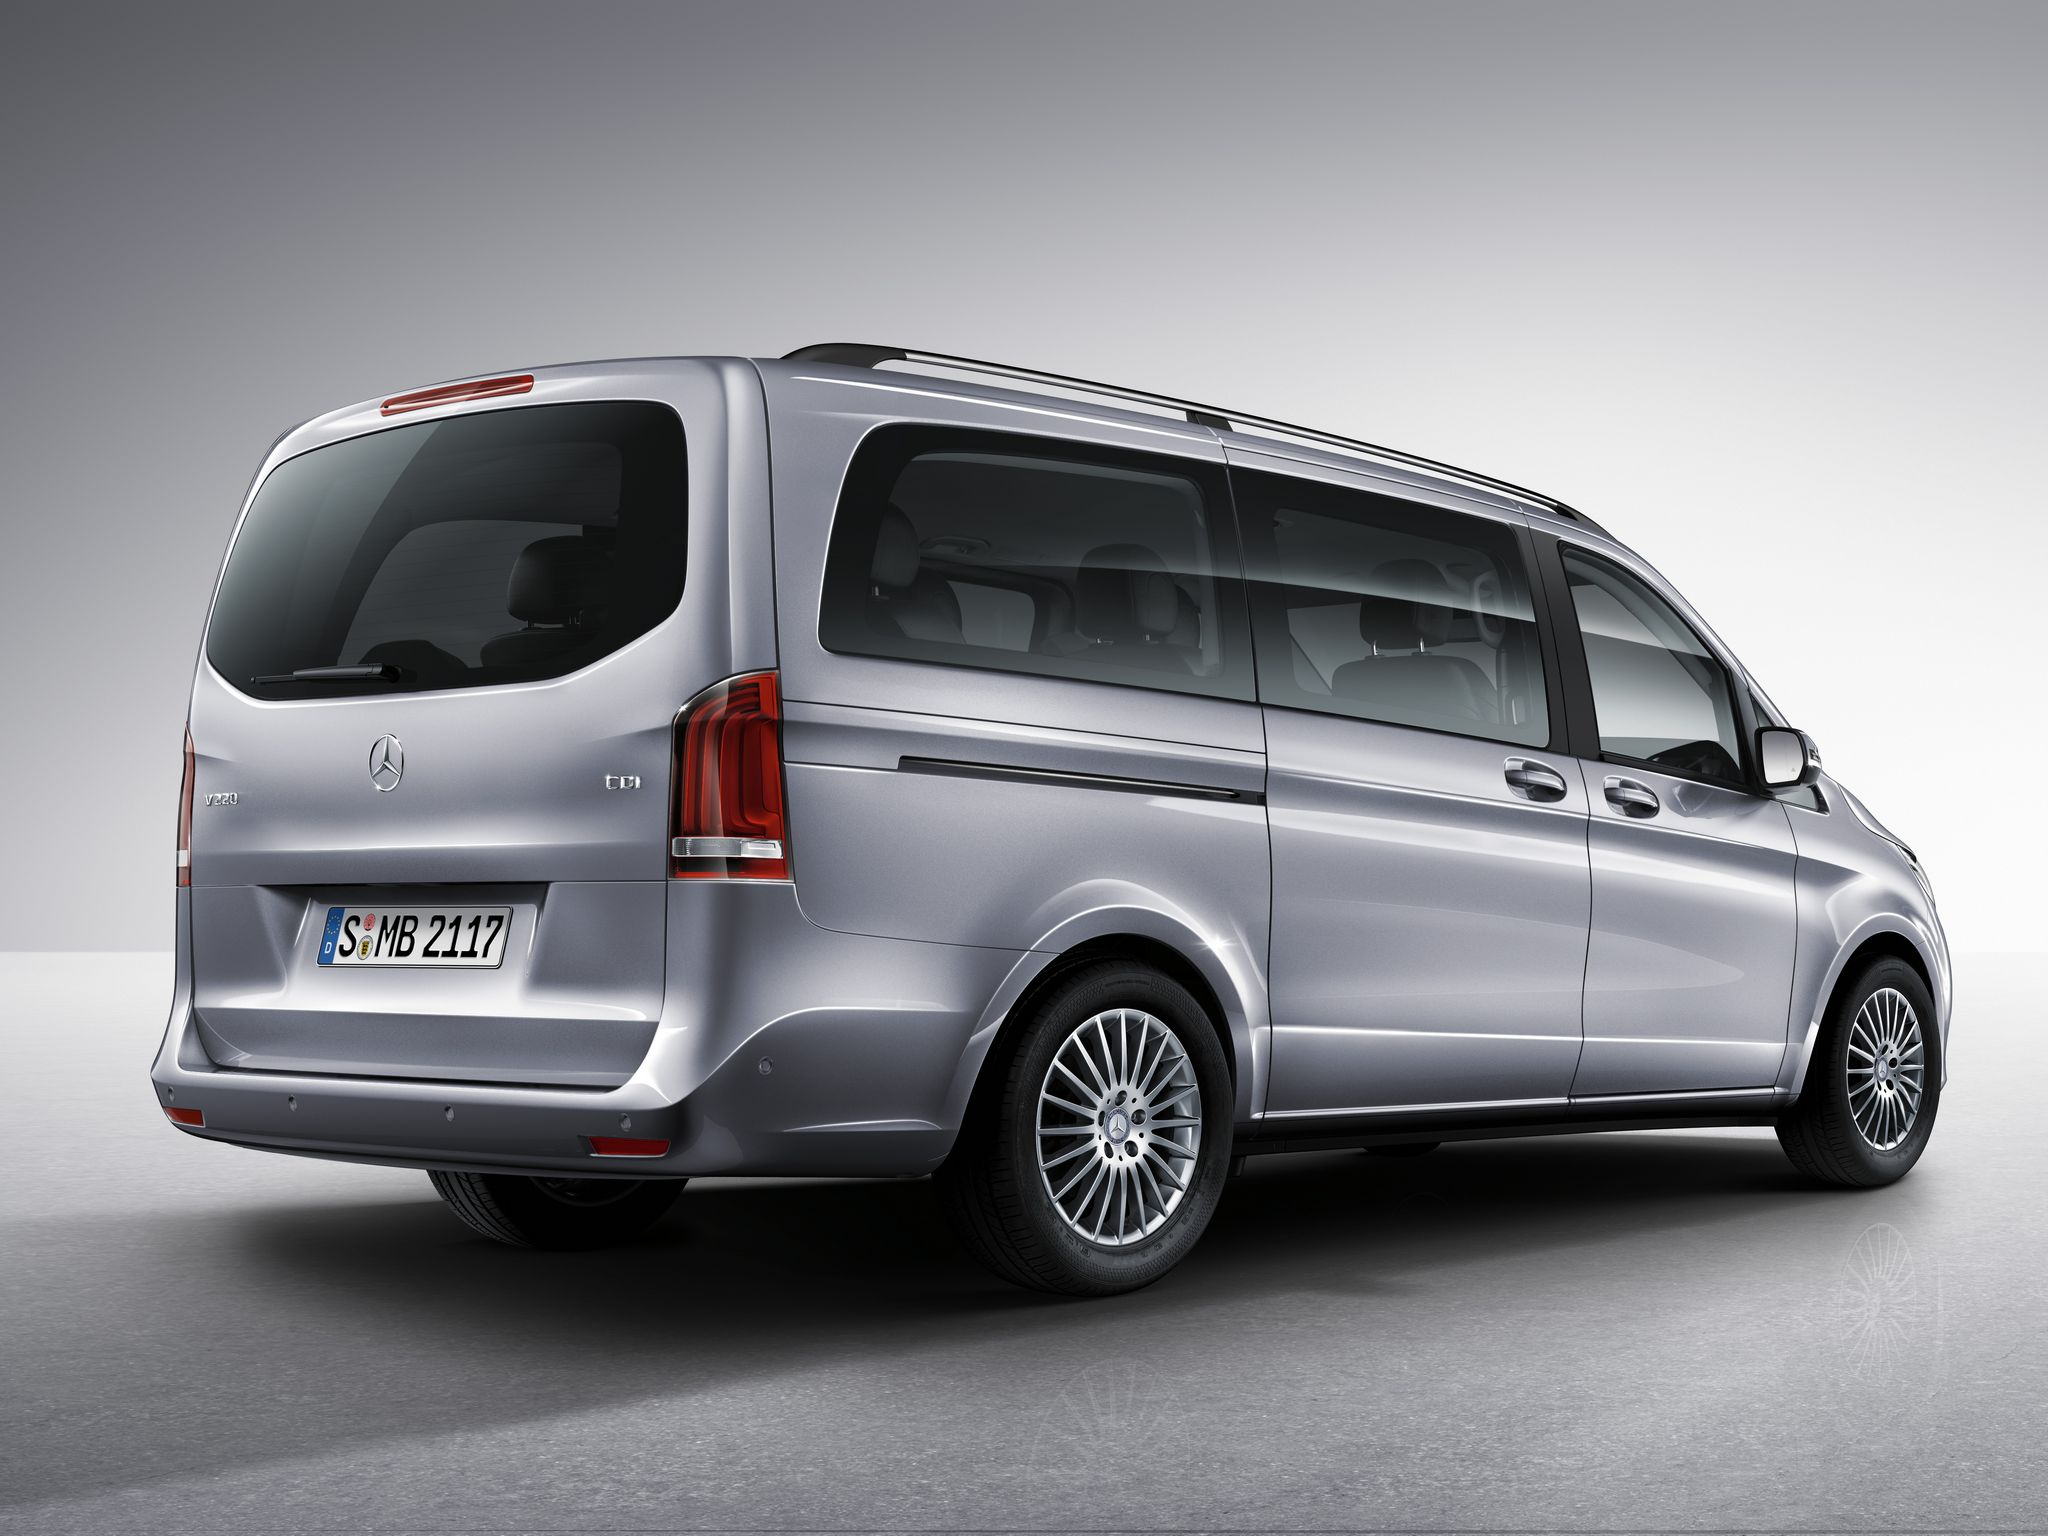 2015 mercedes v class comes with sports package option. Black Bedroom Furniture Sets. Home Design Ideas